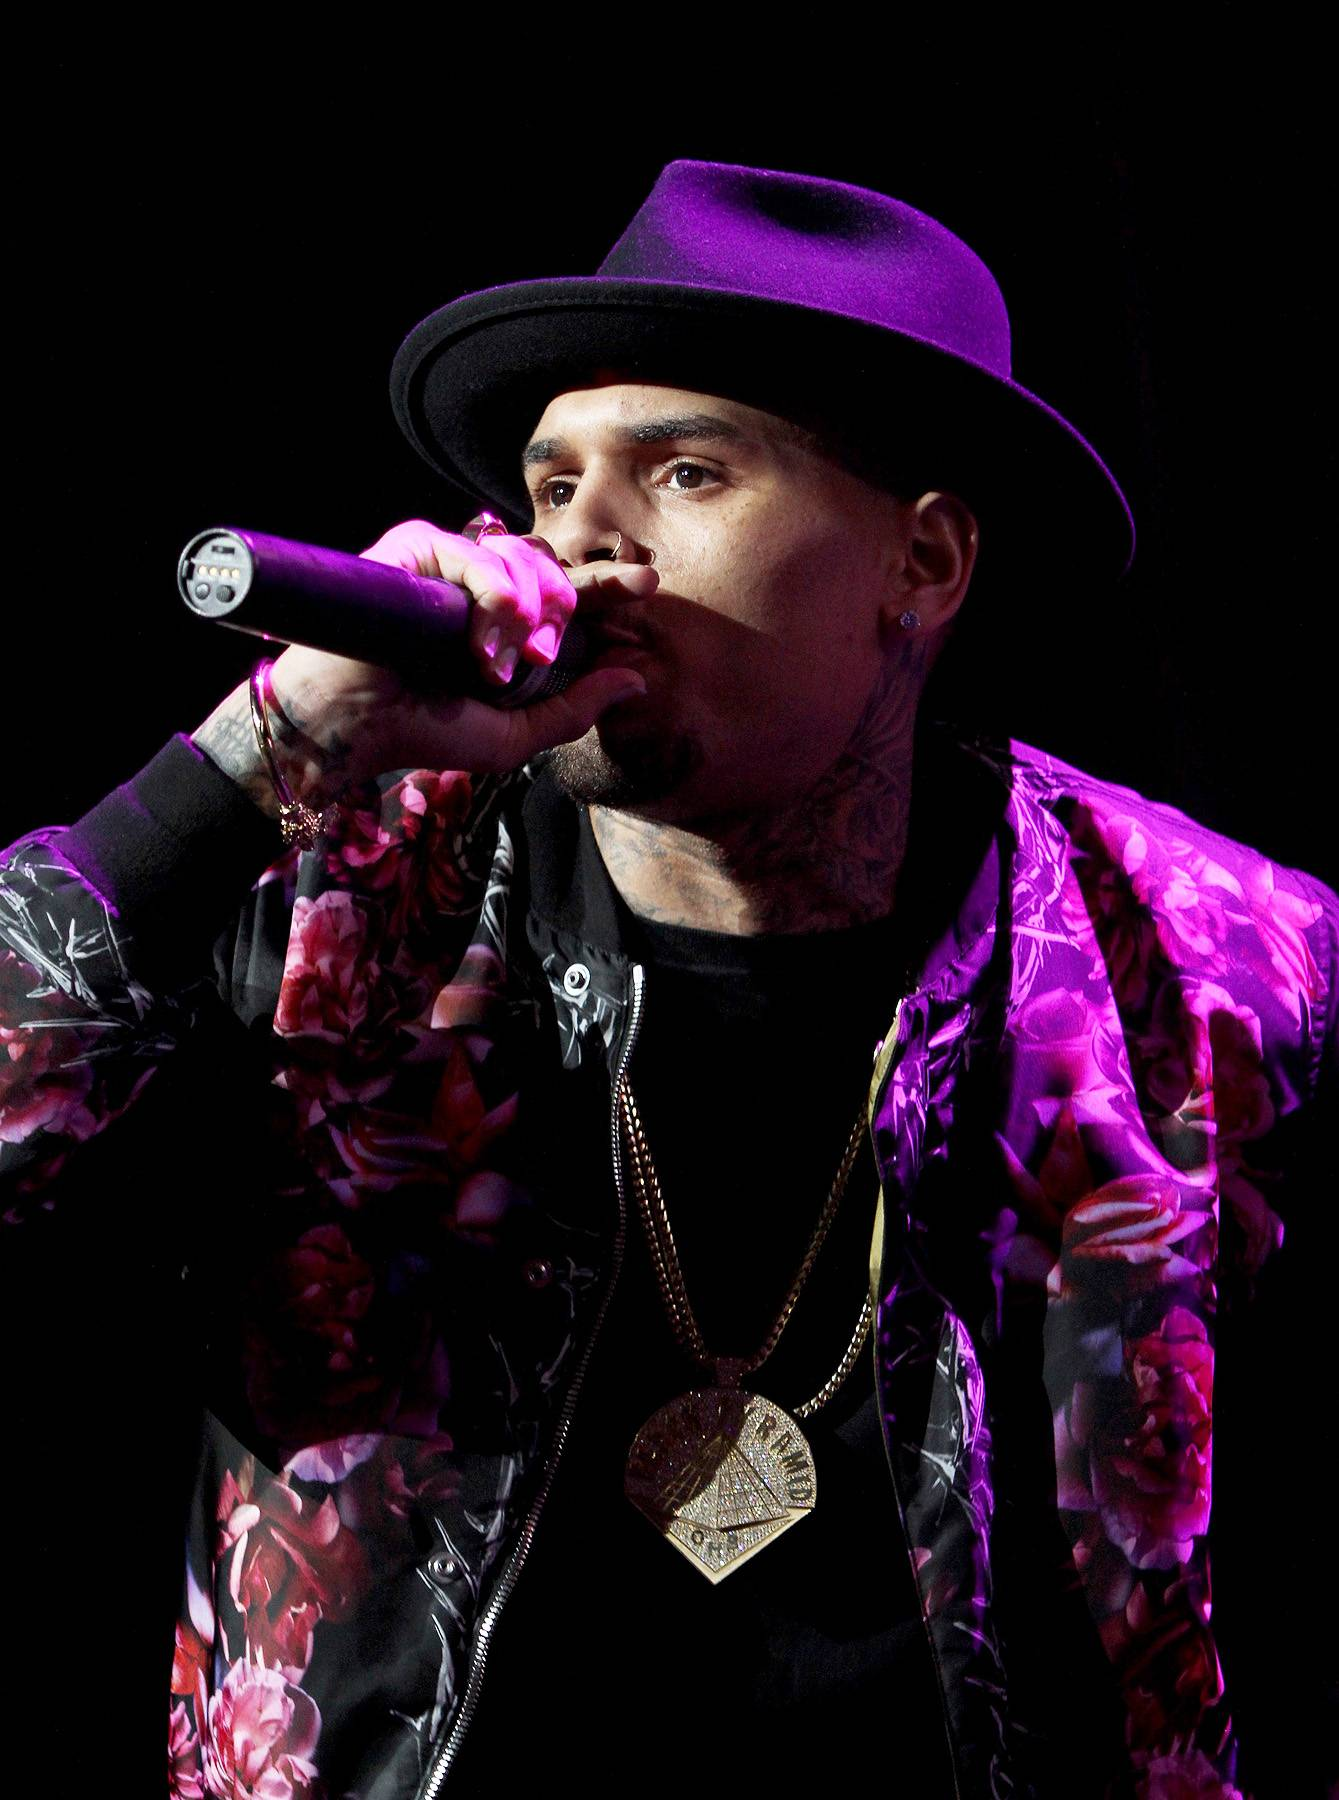 """Just Like Old Times - It didn't take long for Chris Brownto grab the audience. Getting back on stage is just like riding a bike for the """"Loyal"""" singer. (Photo: Maury Phillips/BET/Getty Images for BET)"""